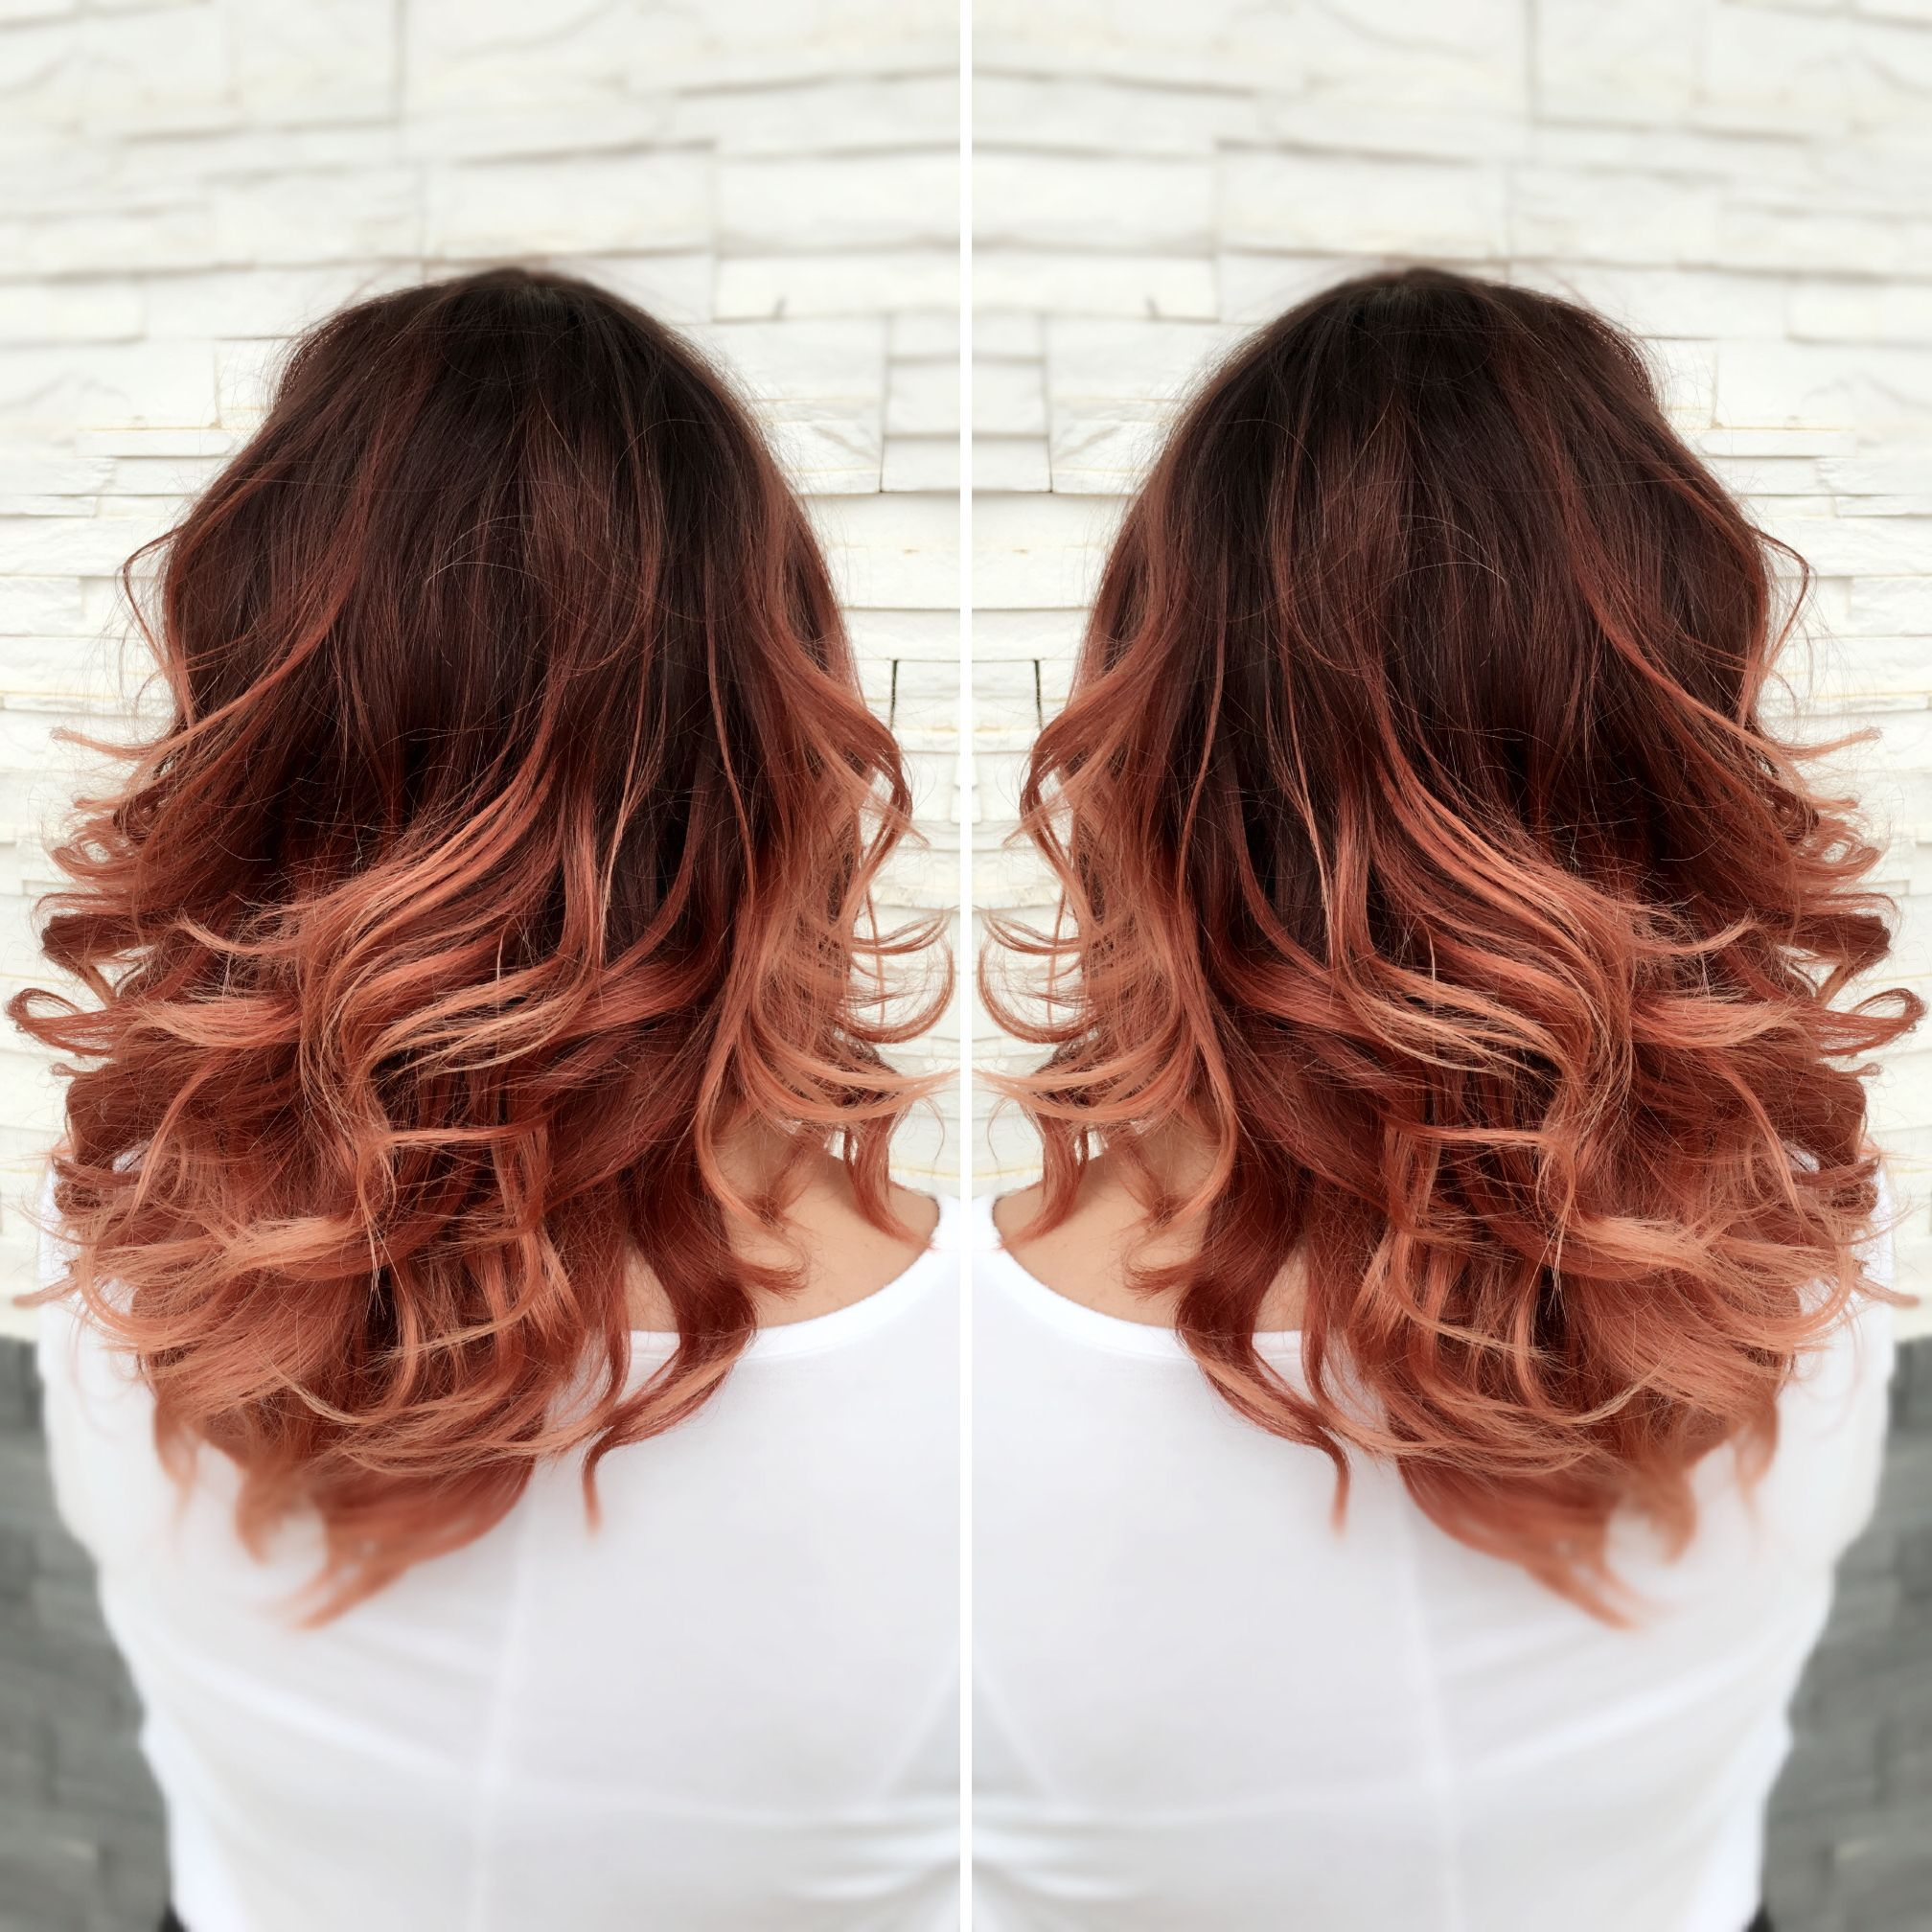 Winter Hair Color Ideas For Brunettes: Red Ombr Rose Gold Ombr Red To Rose Gold Ombr Medium